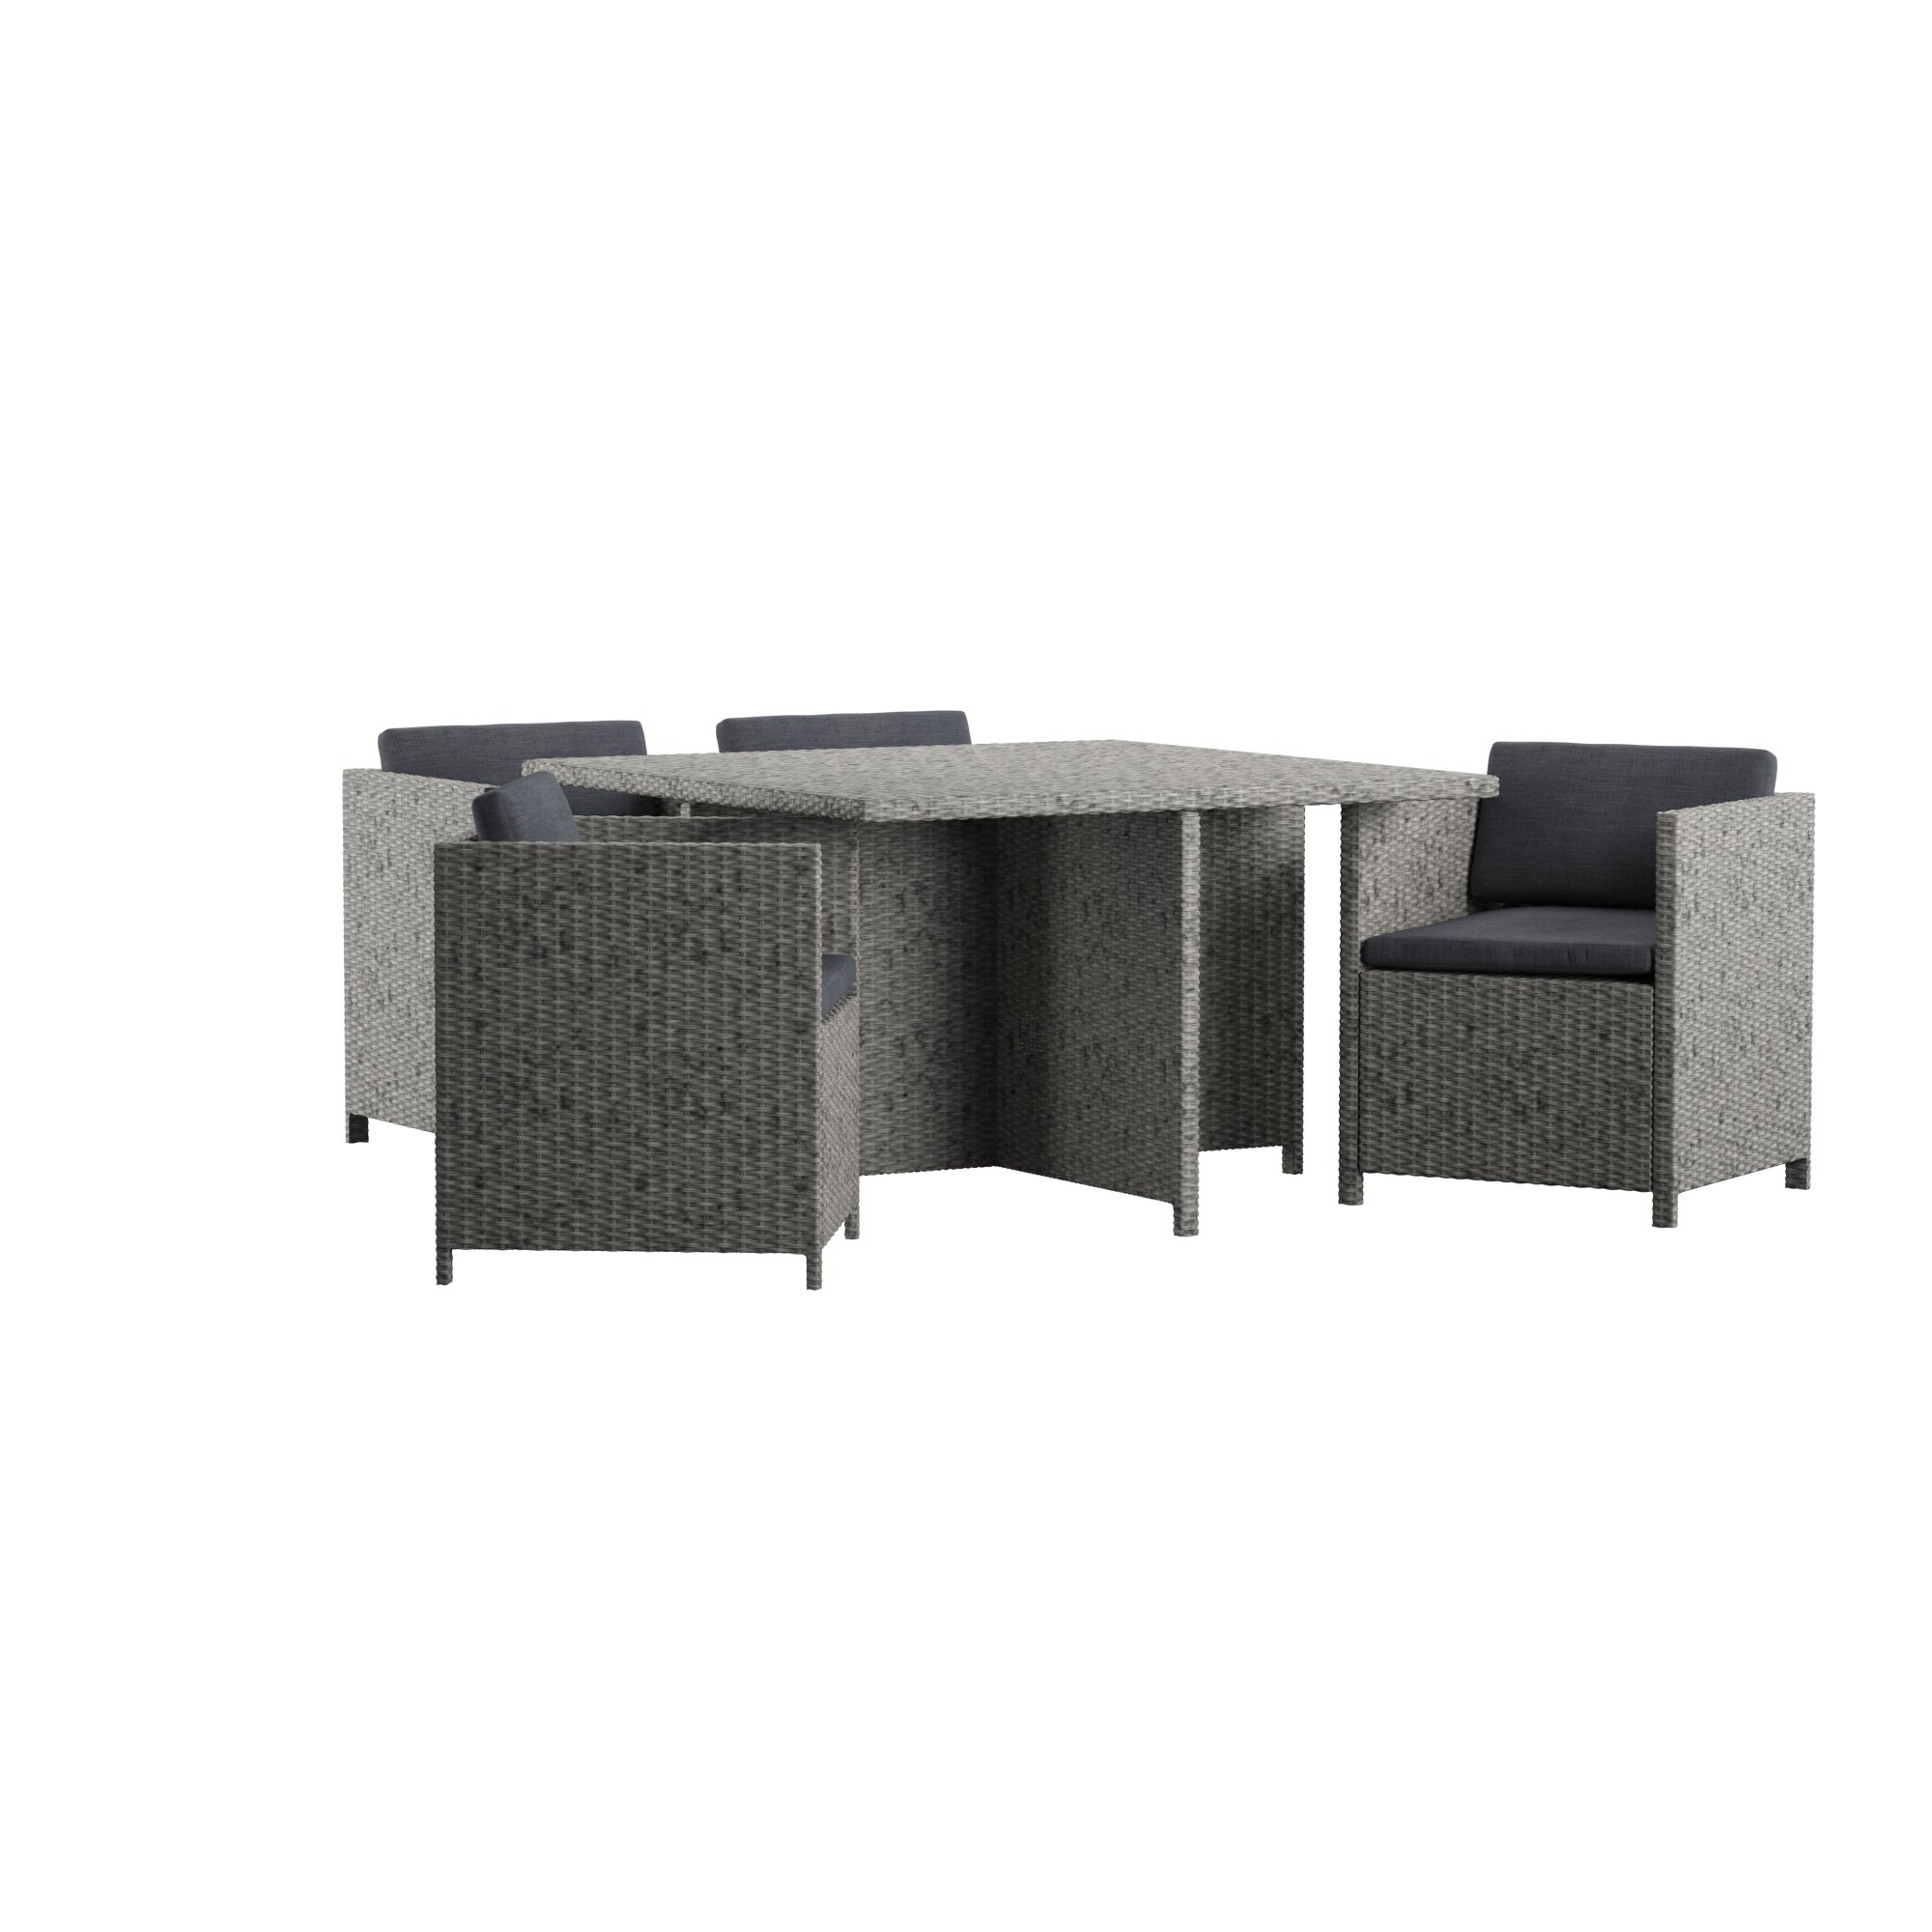 Furst Outdoor 5 Piece Dining Set With Cushions Inside Most Recently Released Furst Patio Sofas With Cushion (View 4 of 20)